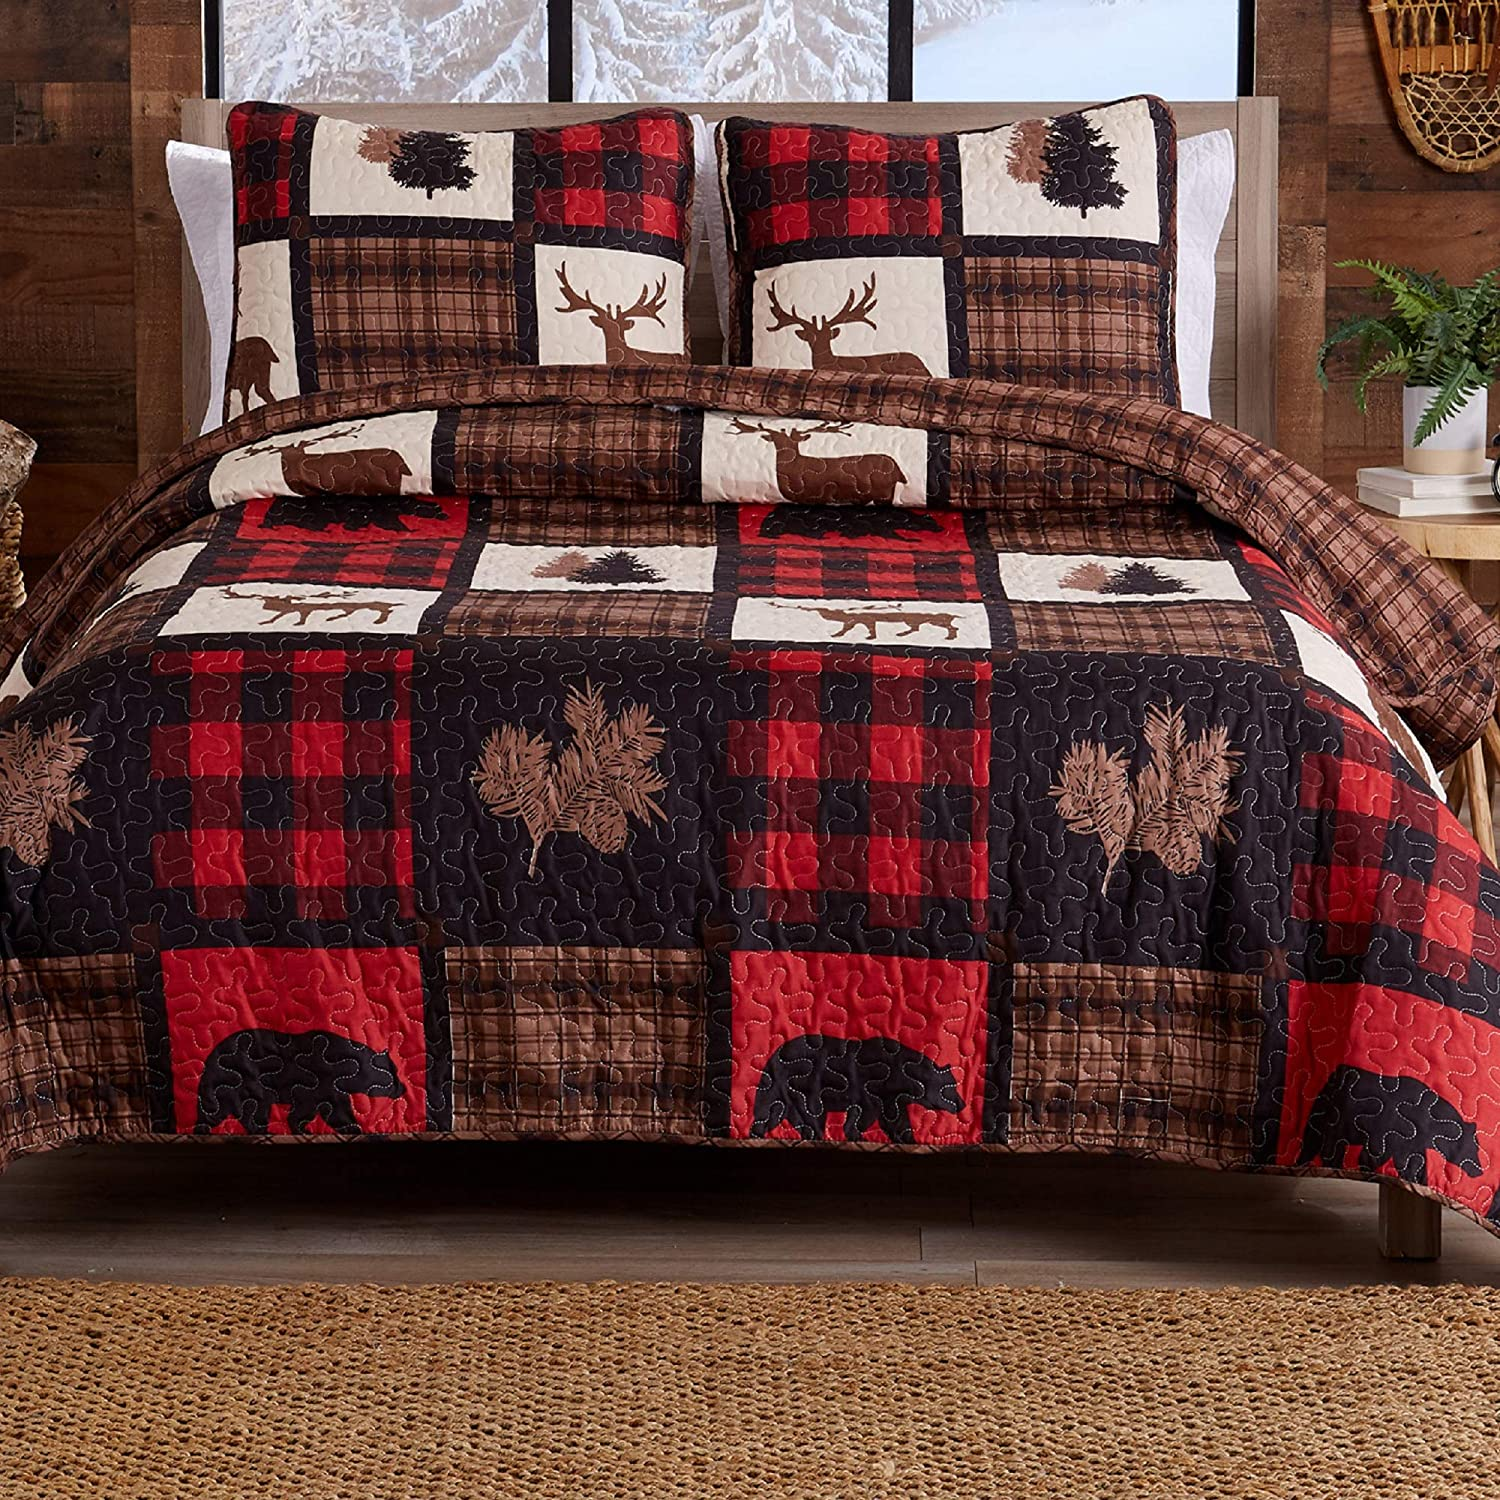 Lodge Bedspread Full/Queen Size Quilt with 2 Shams. Cabin 3-Piece Reversible All Season Quilt Set. Rustic Quilt Coverlet Bed Set